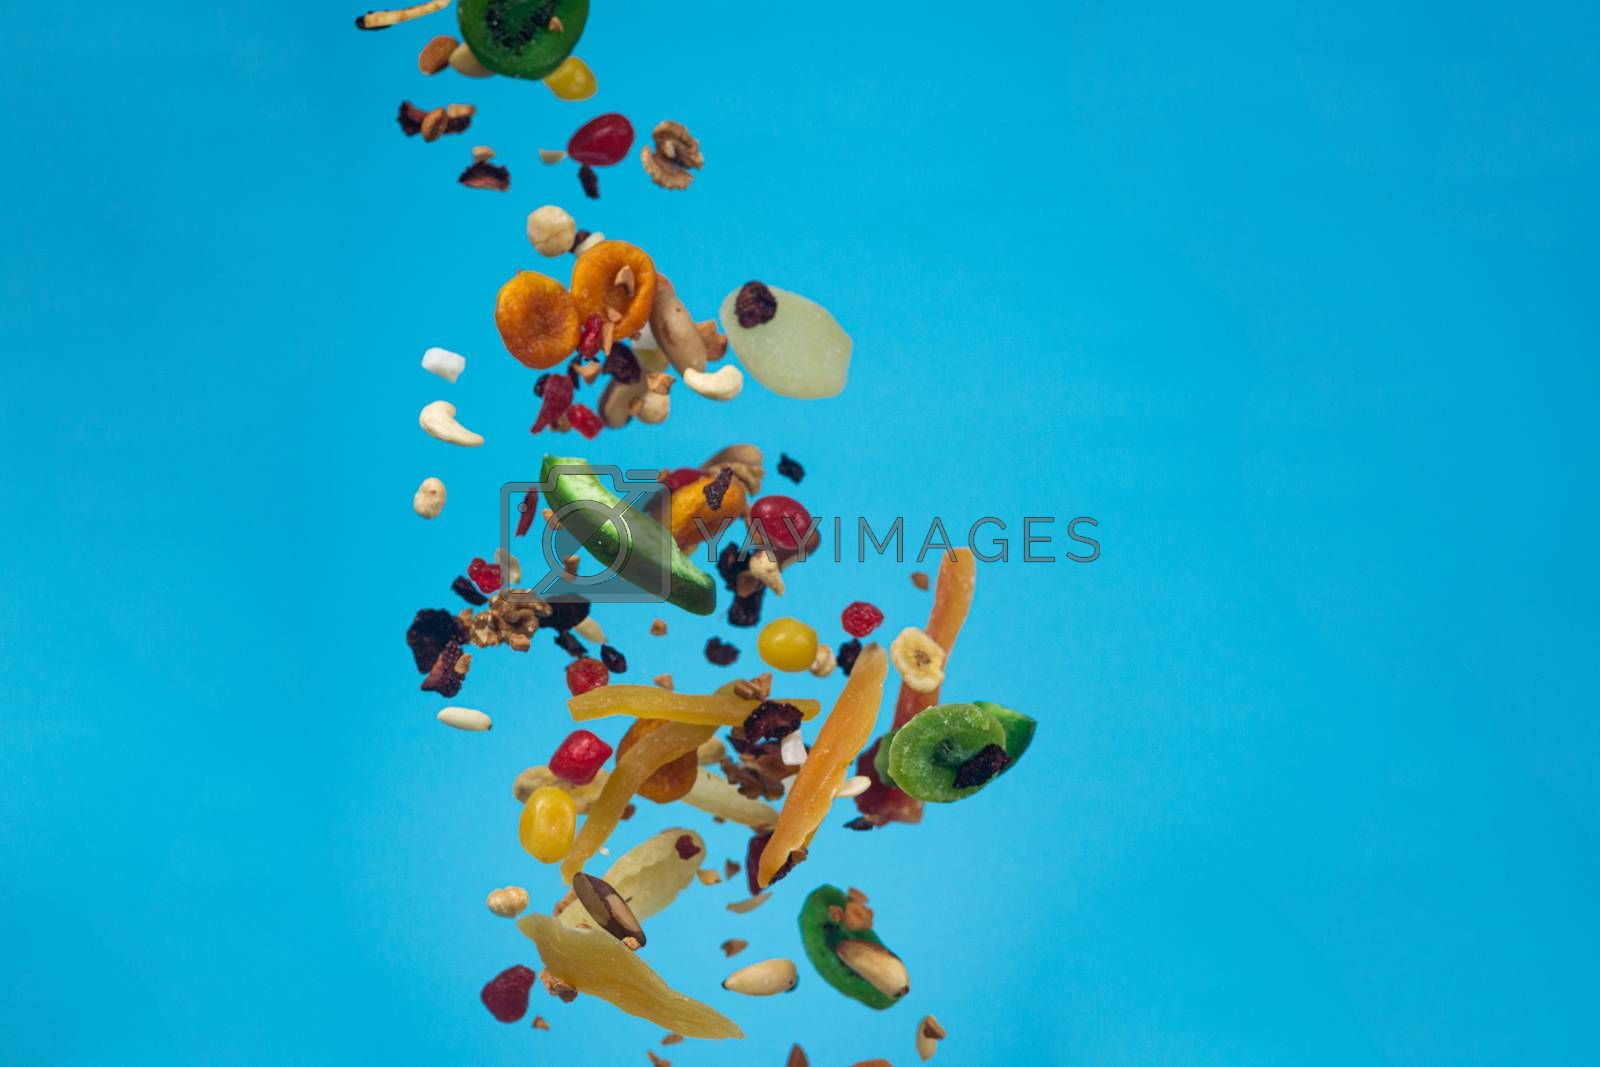 Dried and candied fruits and nuts flying on blue background. Sto by alexsdriver